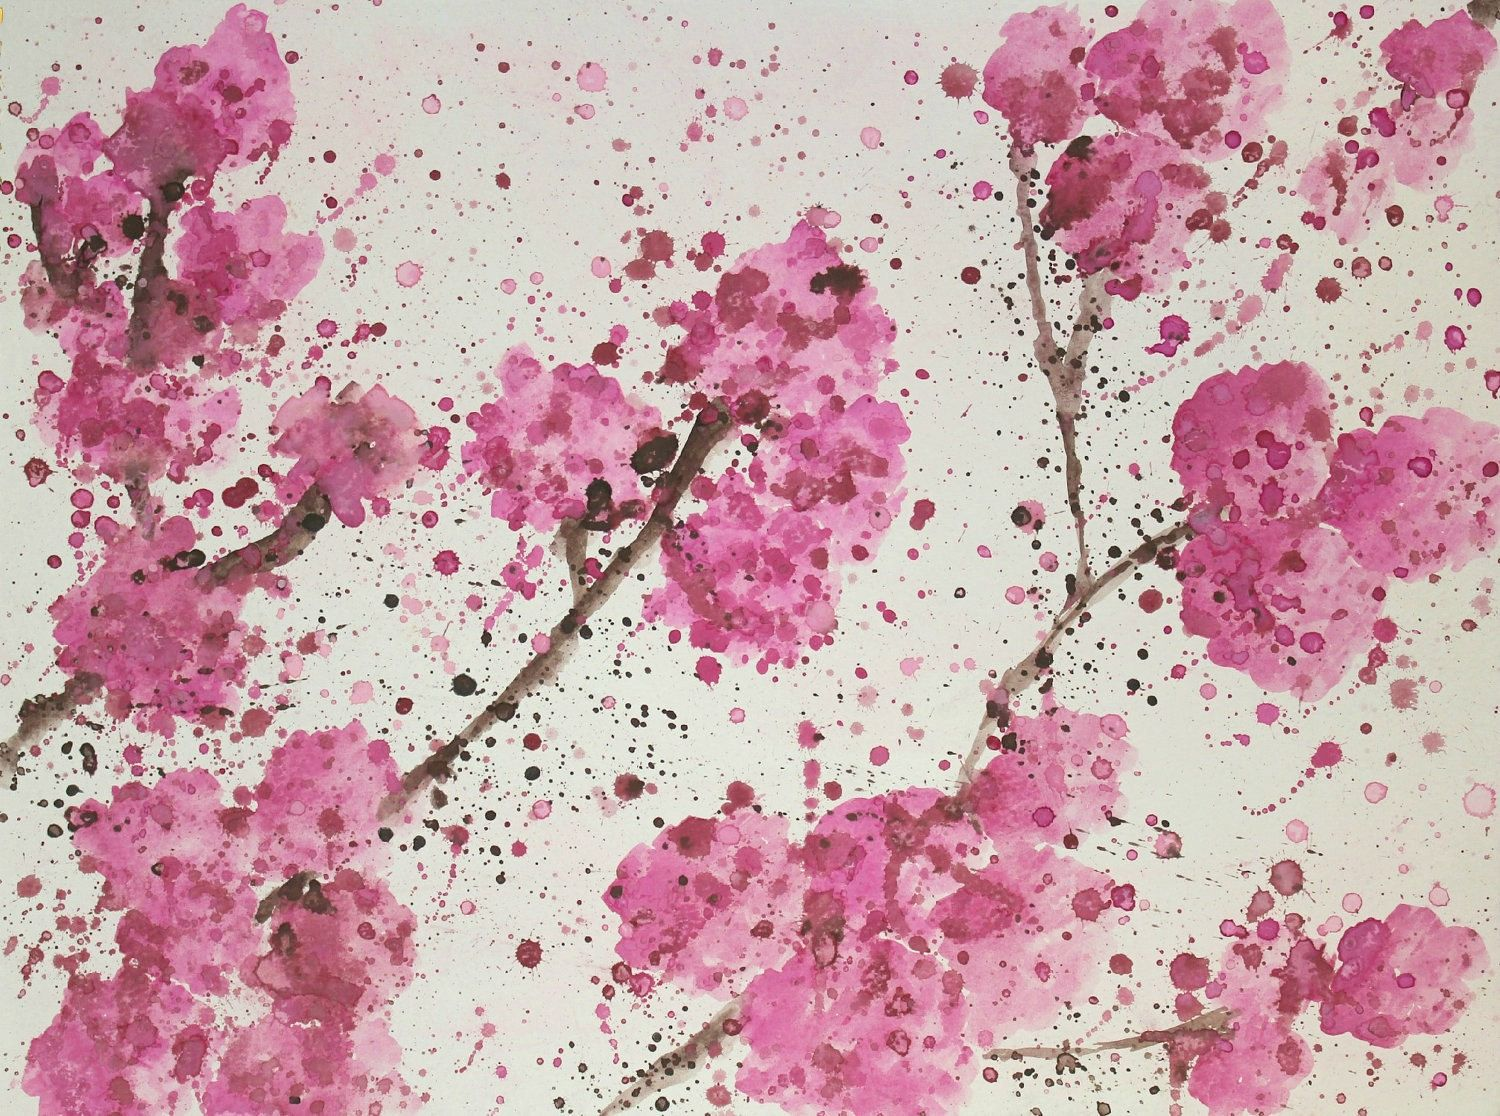 Cherry Blossoms Abstract Watercolor Painting